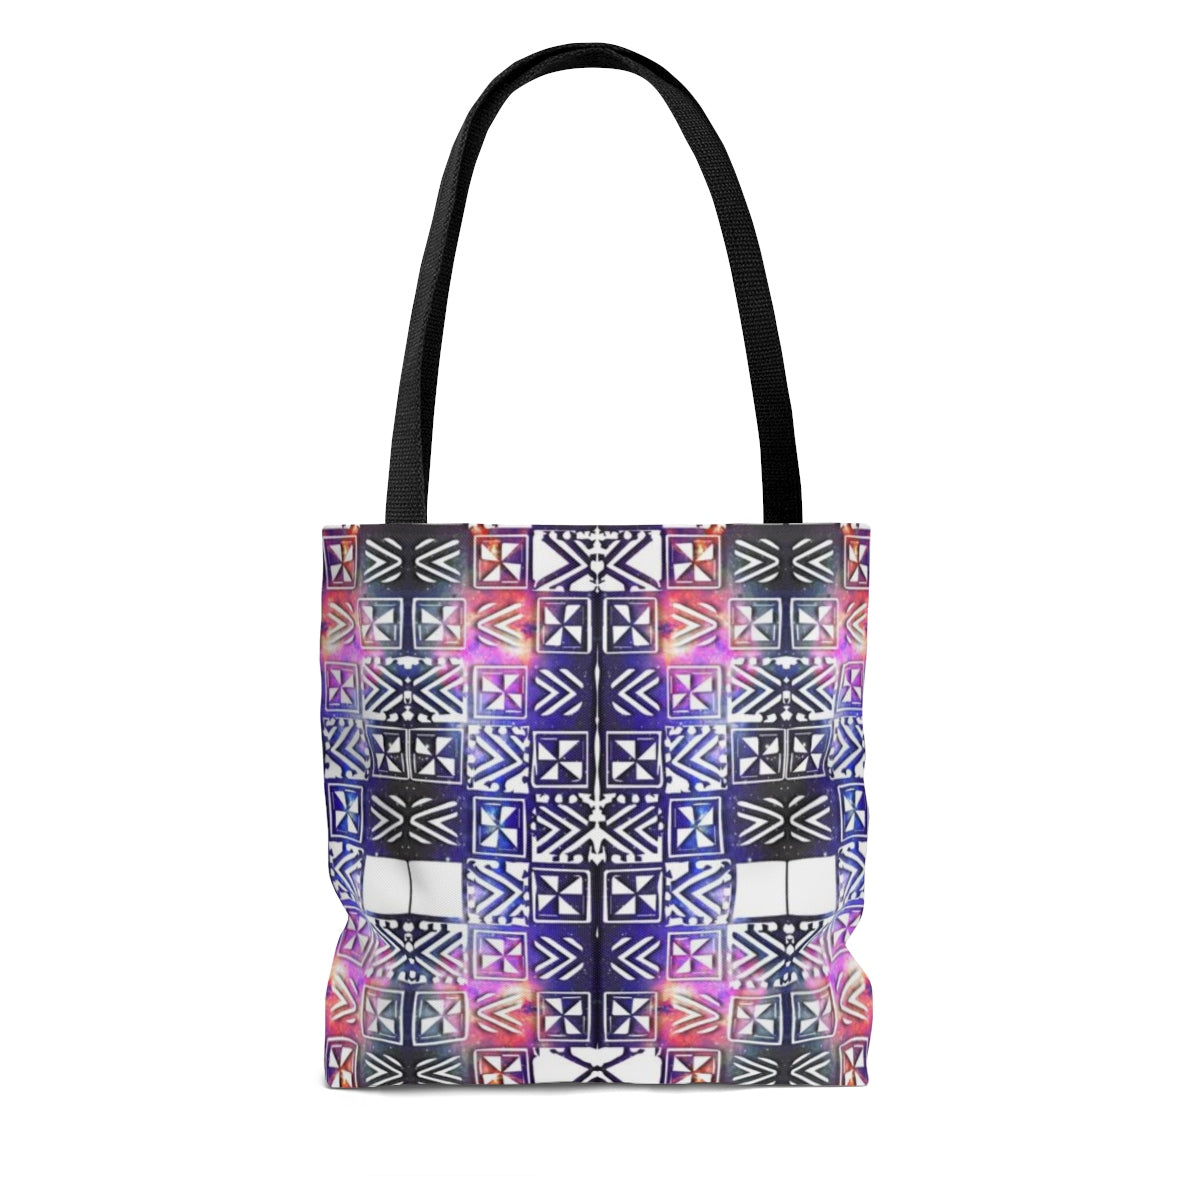 Fiji Islands #0009 (Tote Bag)